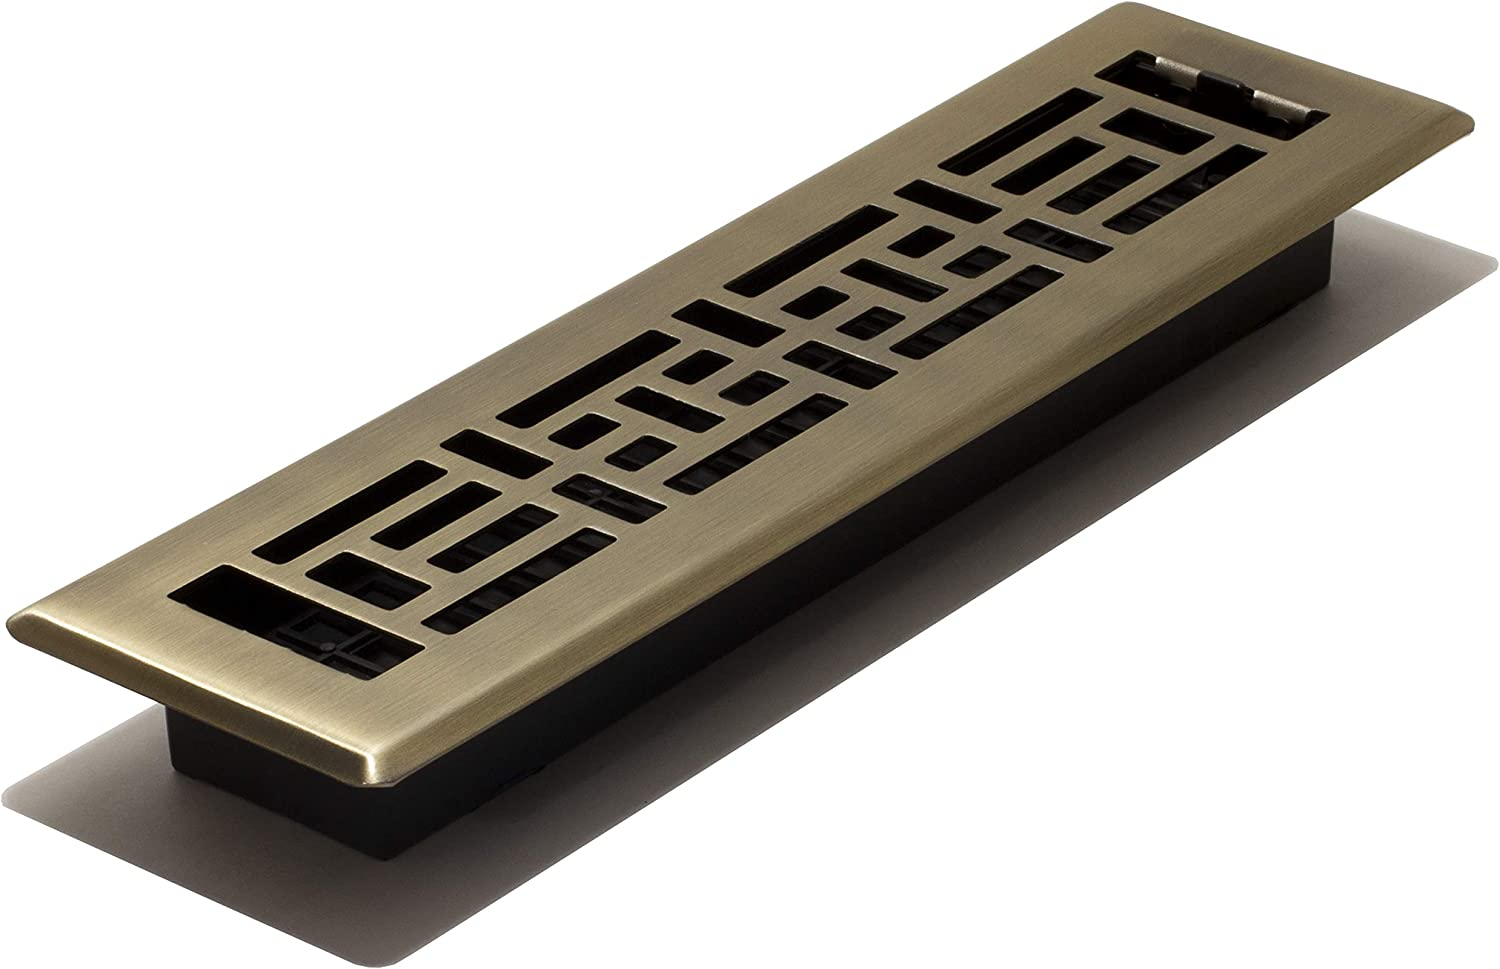 Decor Grates AJH212 2-inch by 12-inch Oriental Floor Register, Polished Brass Finish